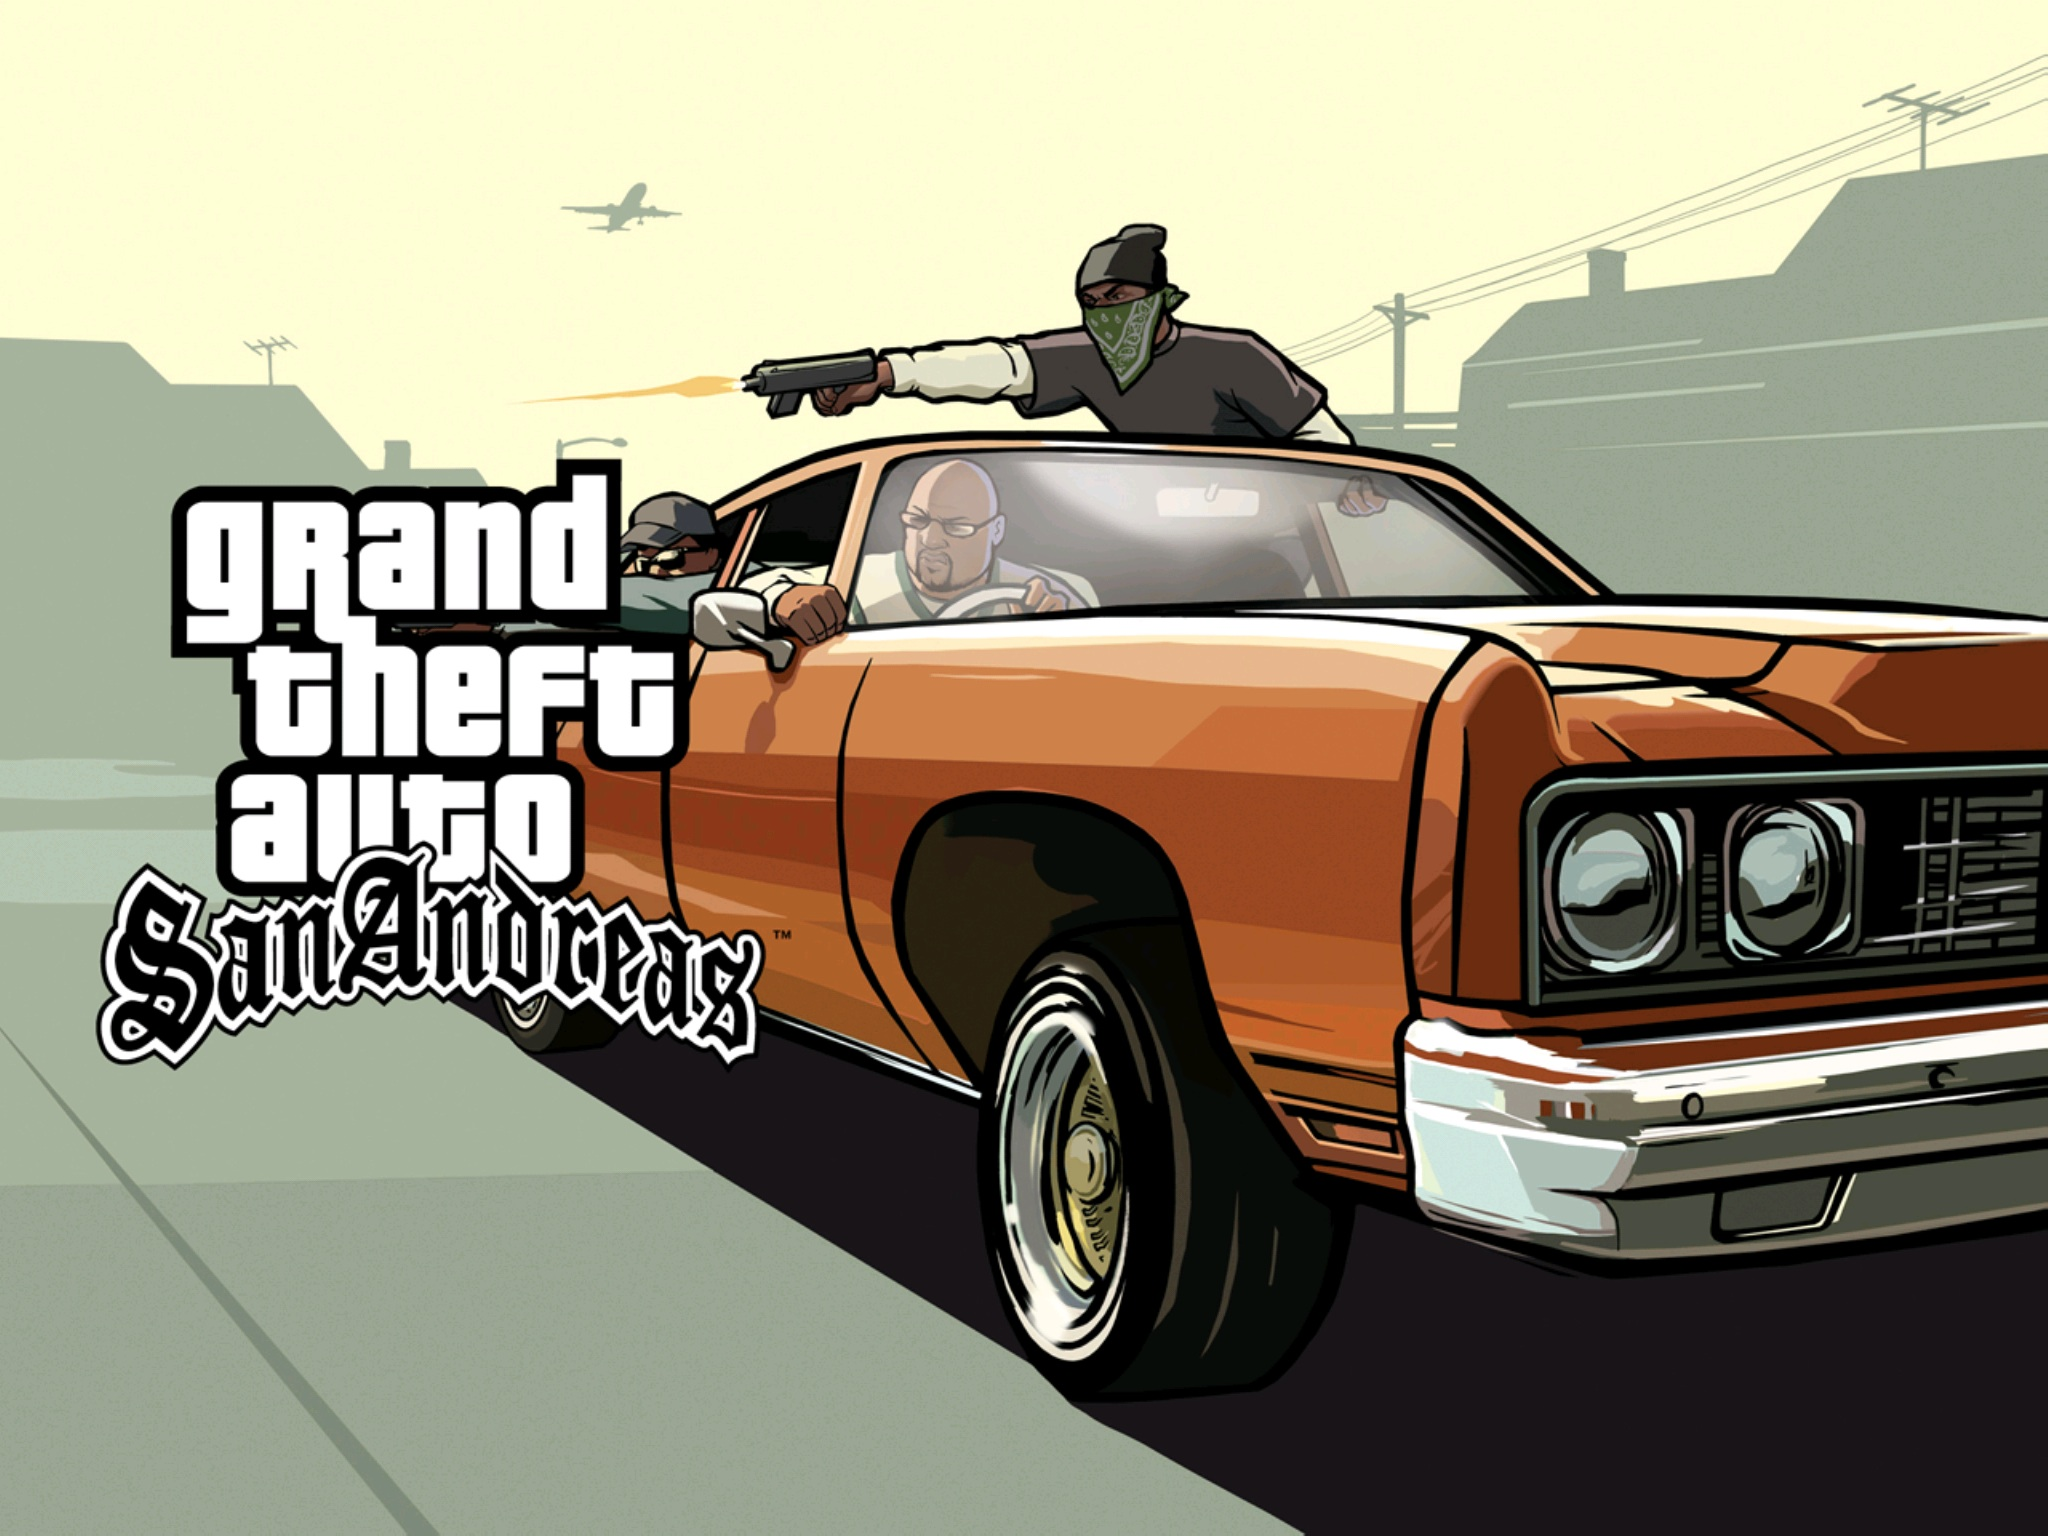 Grand Theft Auto San Andreas Review Throw Some Chedda At This